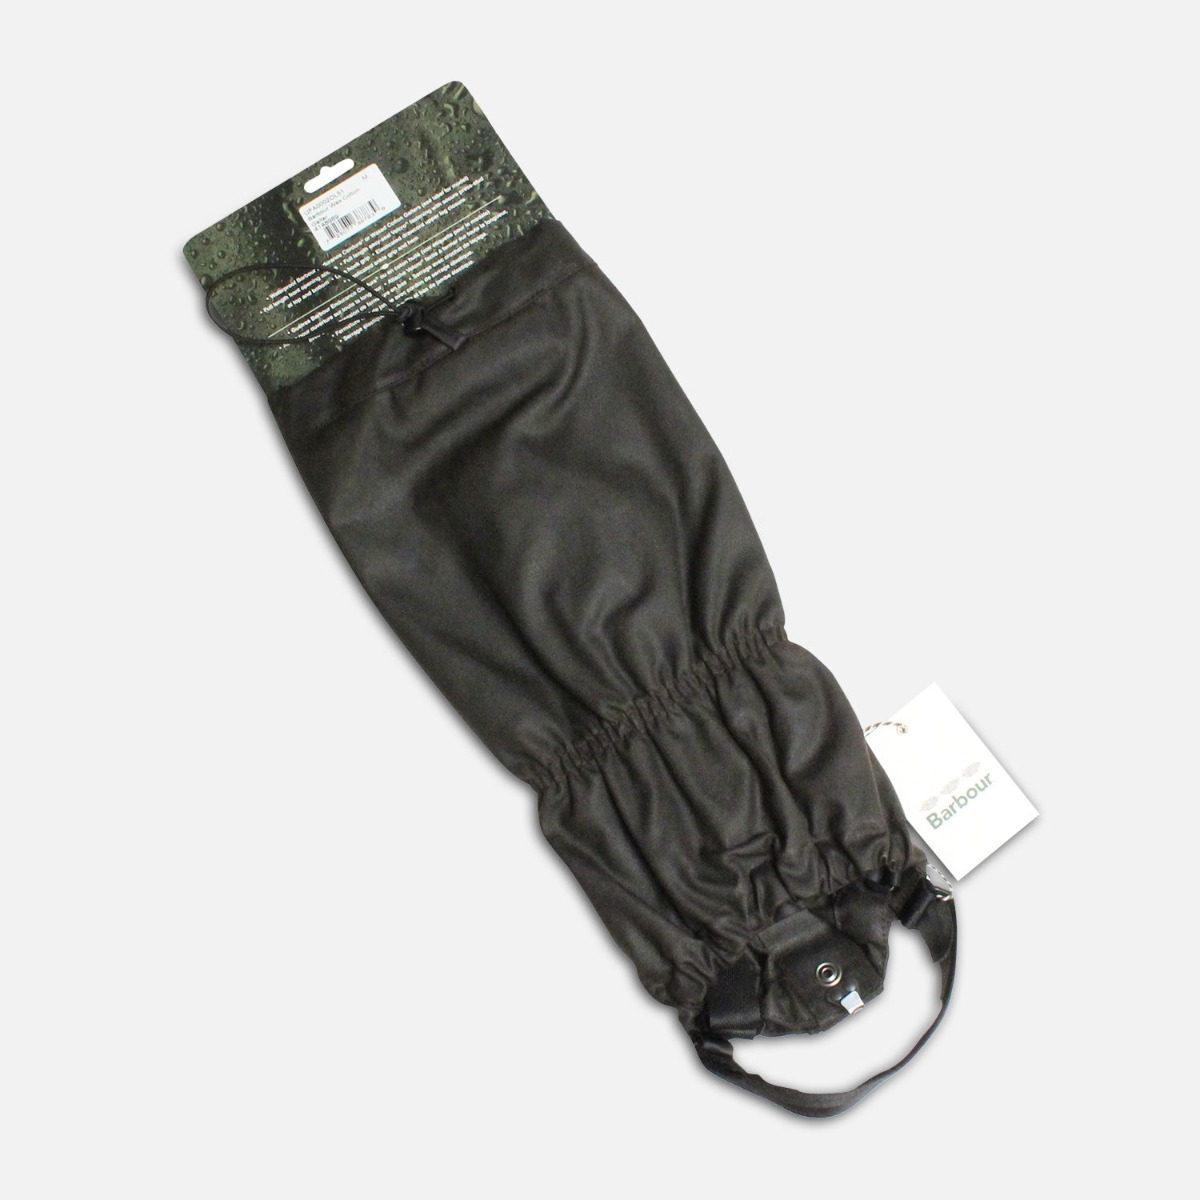 Waterproof Barbour Gaiters in Dark Waxy Green Cotton